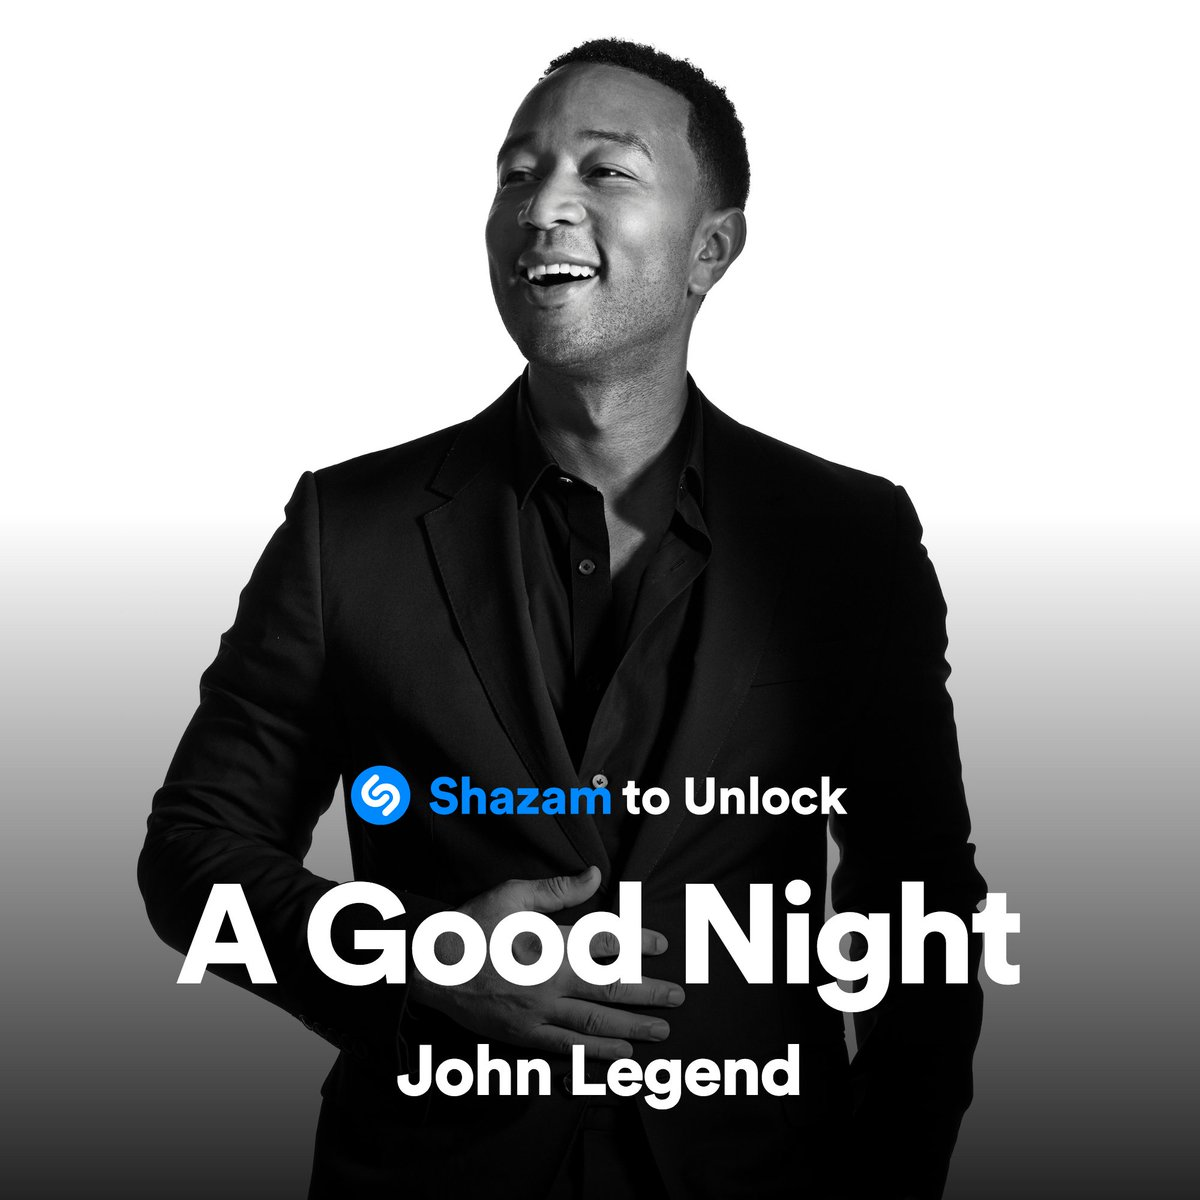 Want an exclusive behind the scenes look at the making of the #AGoodNight video? @Shazam the song now to unlock!